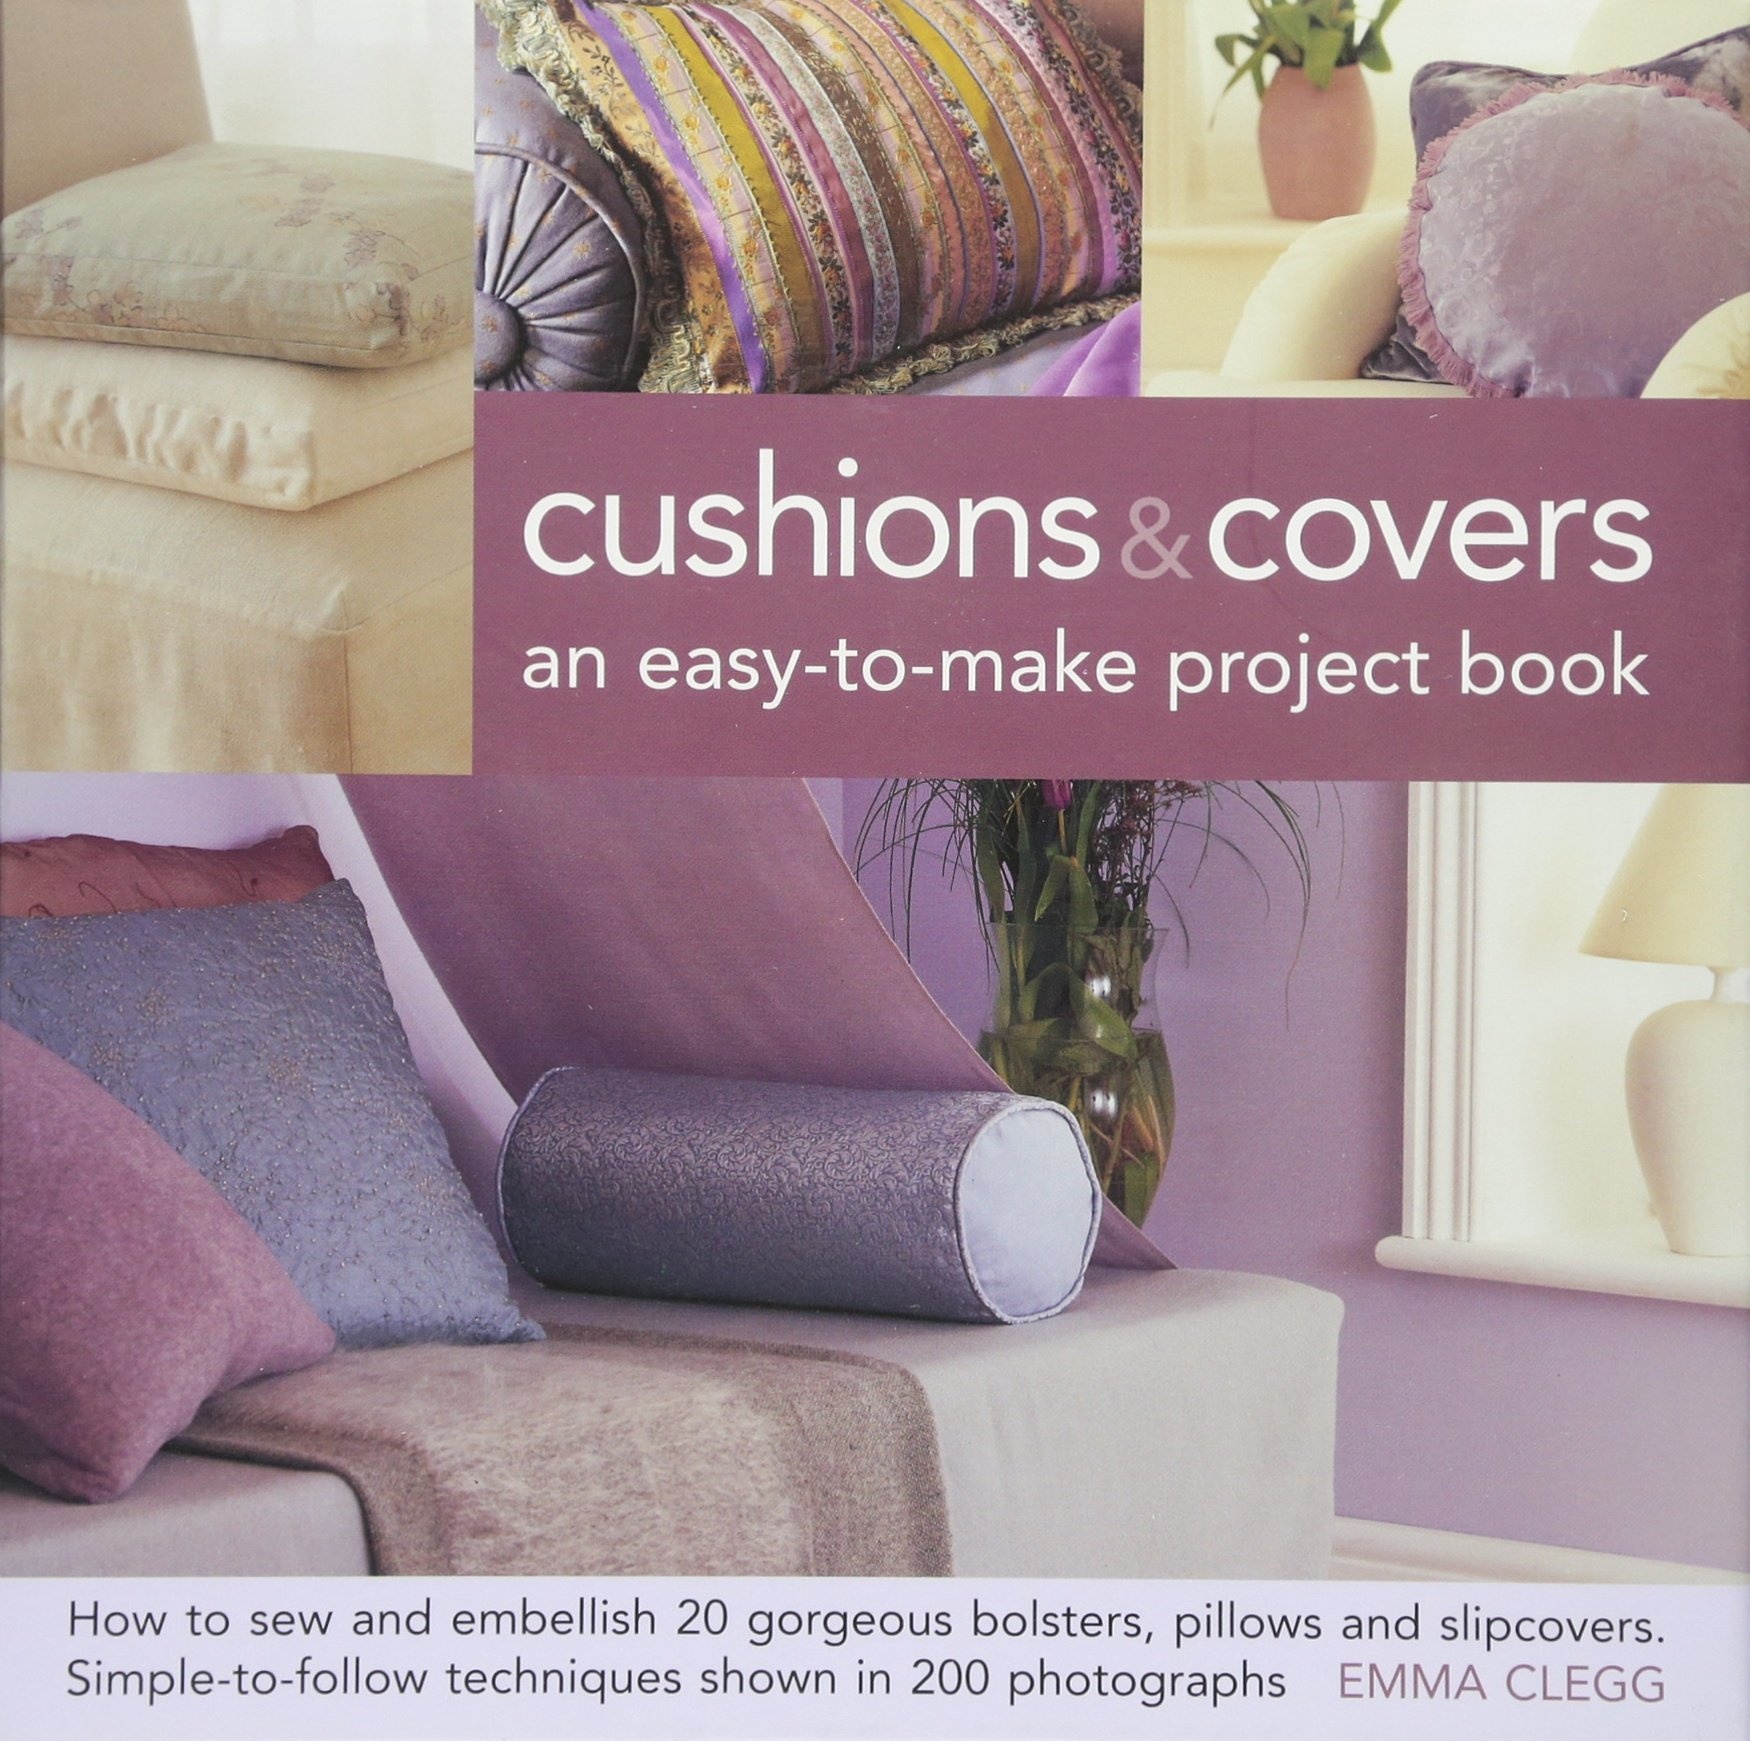 Read Online Cushions & Covers - An Easy-To-Make Project Book: How to Sew and Embellish 20 Gorgeous Bolsters, Pillows and Slipcovers; Simple-to-Follow Techniques Shown in 200 Photographs ebook